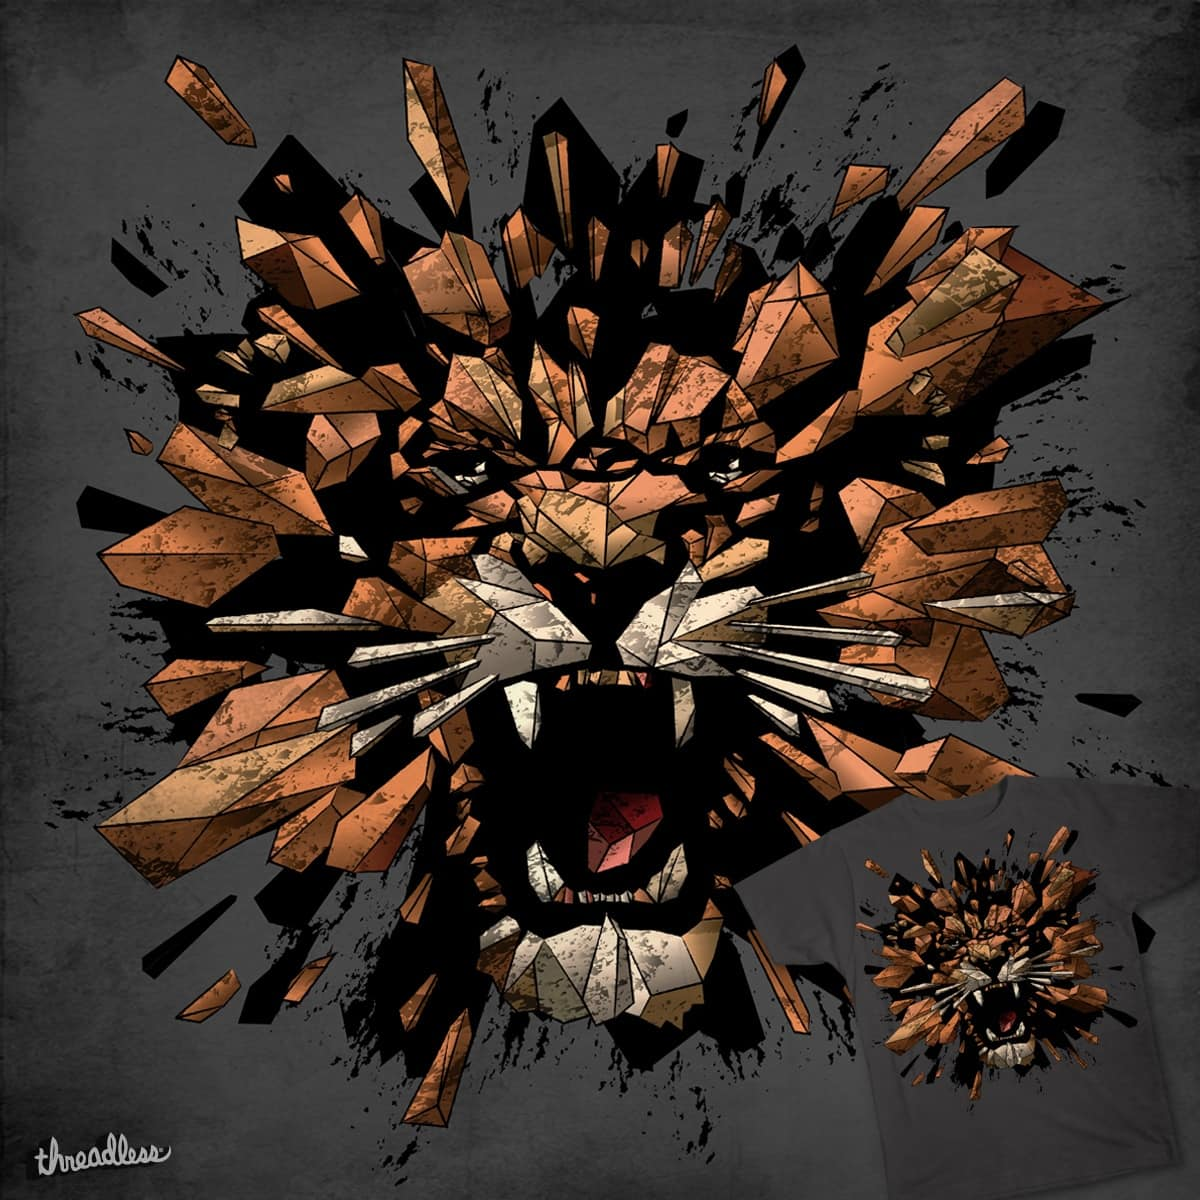 ROAR BY NATURE by Vipin Das on Threadless